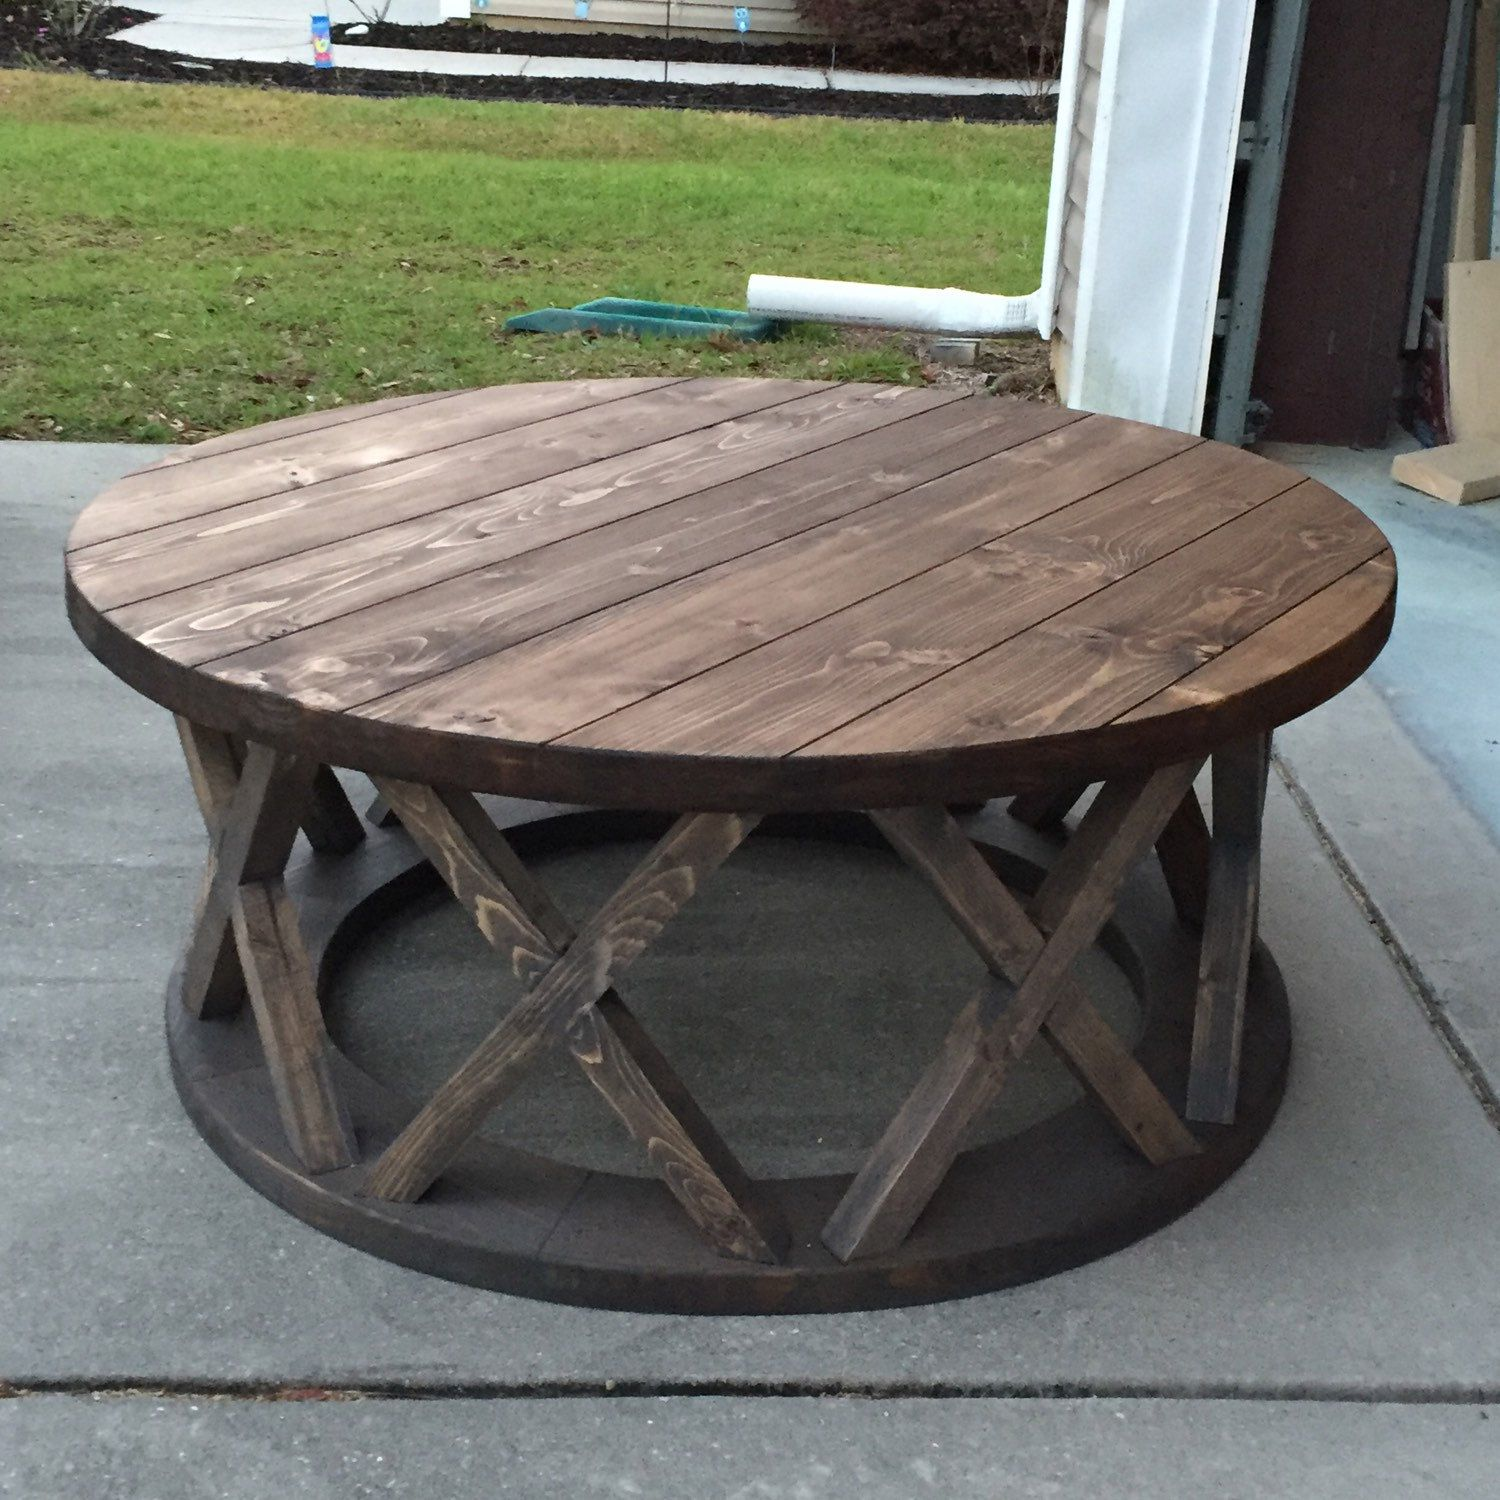 round farmhouse coffee table RScustomdesign shared a new photo on in 2018 | R&S custom design  round farmhouse coffee table